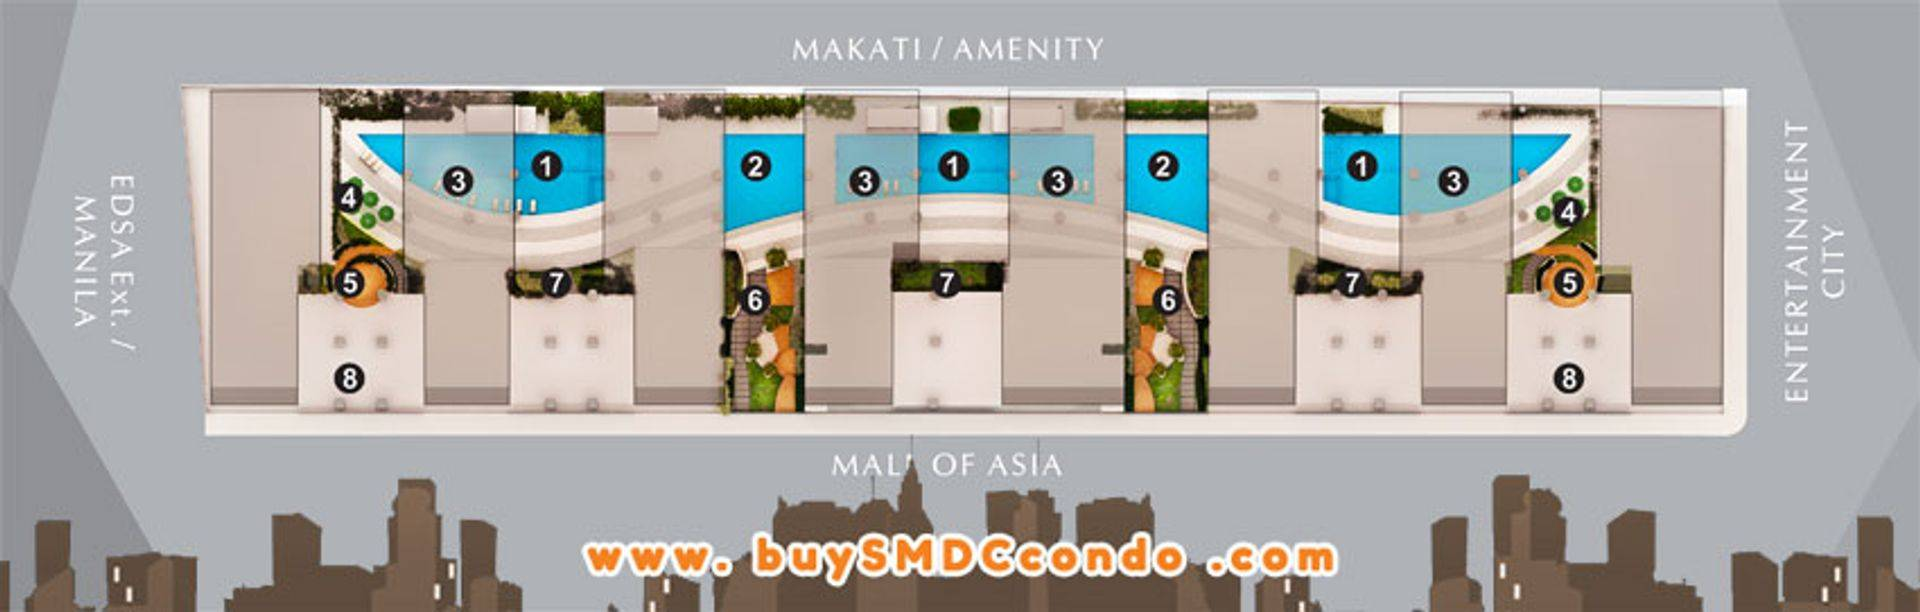 SMDC S Residences SM Mall of Asia Pasay City Condo Site Development Plan